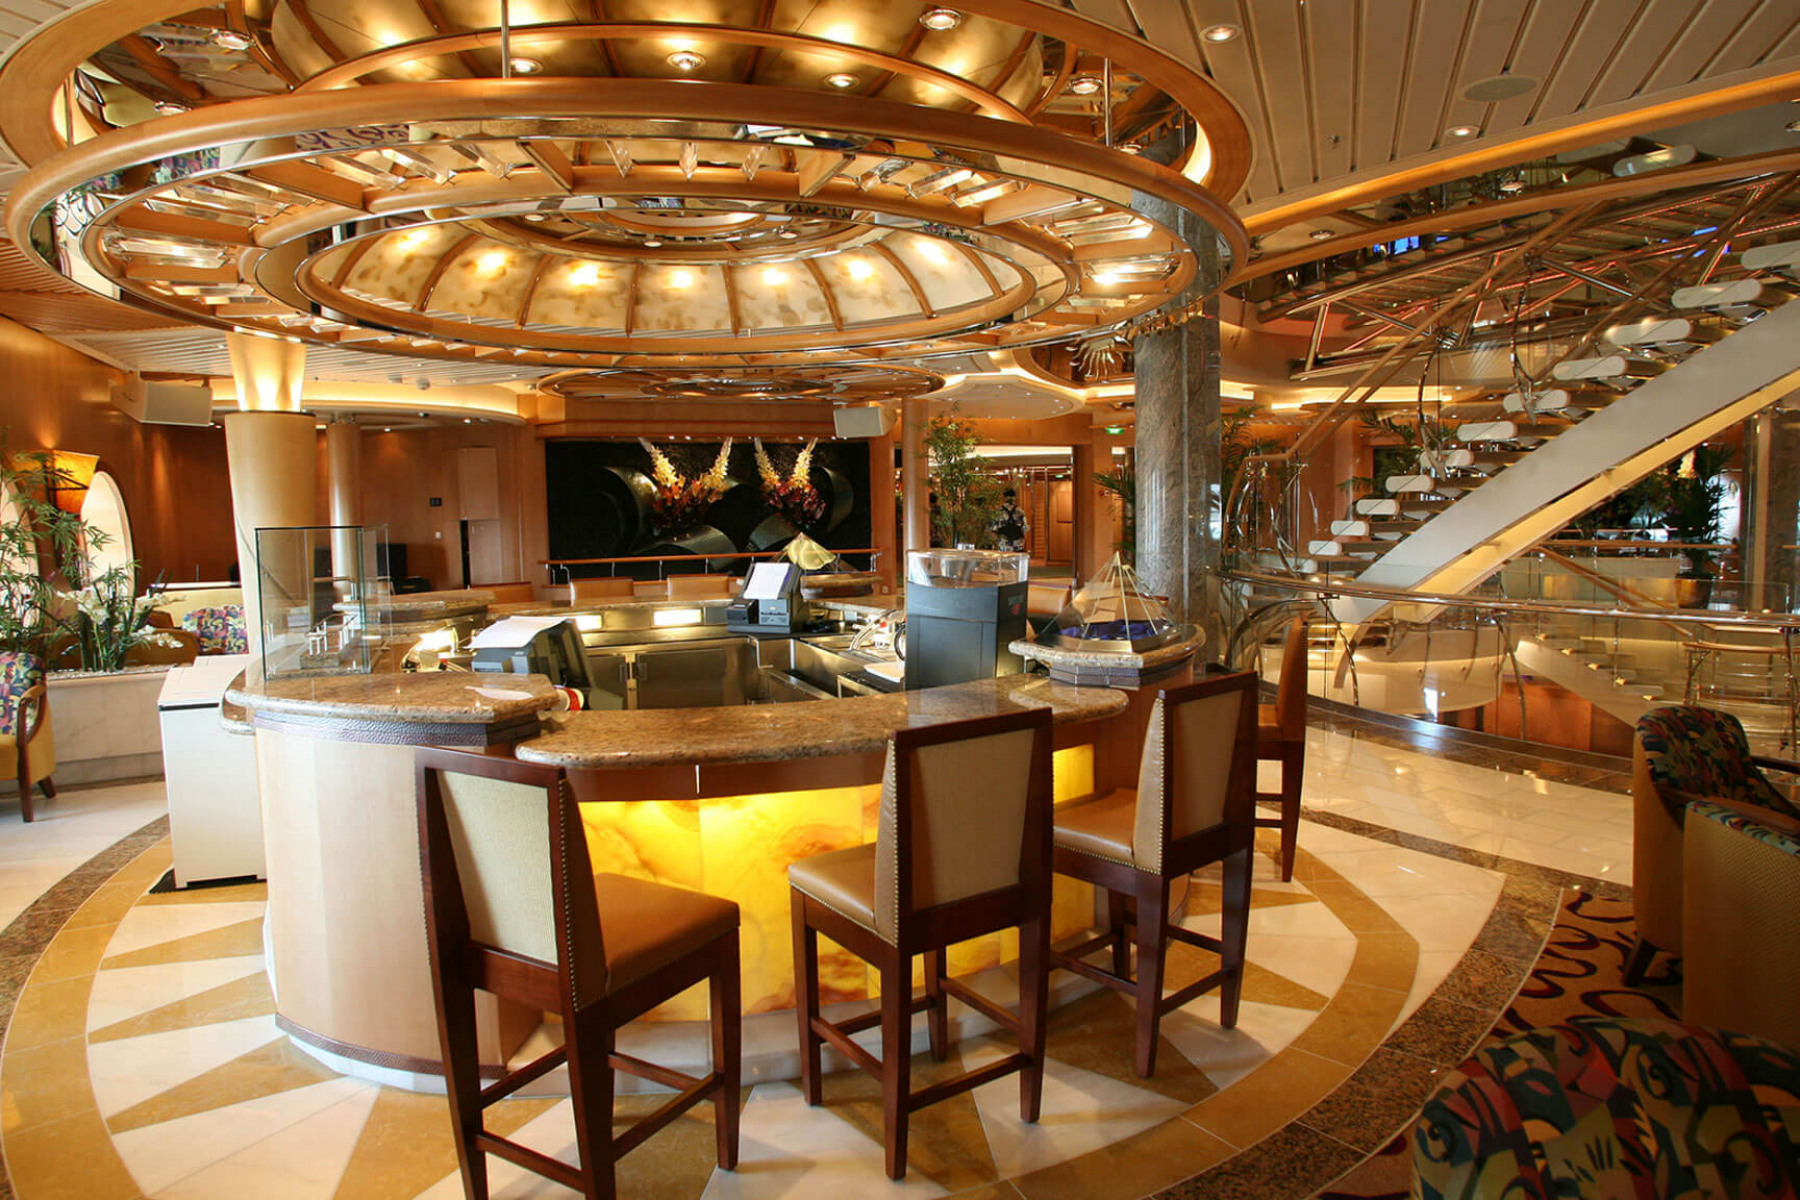 Royal Caribbean Independance of the seas Interior new boleros.jpg